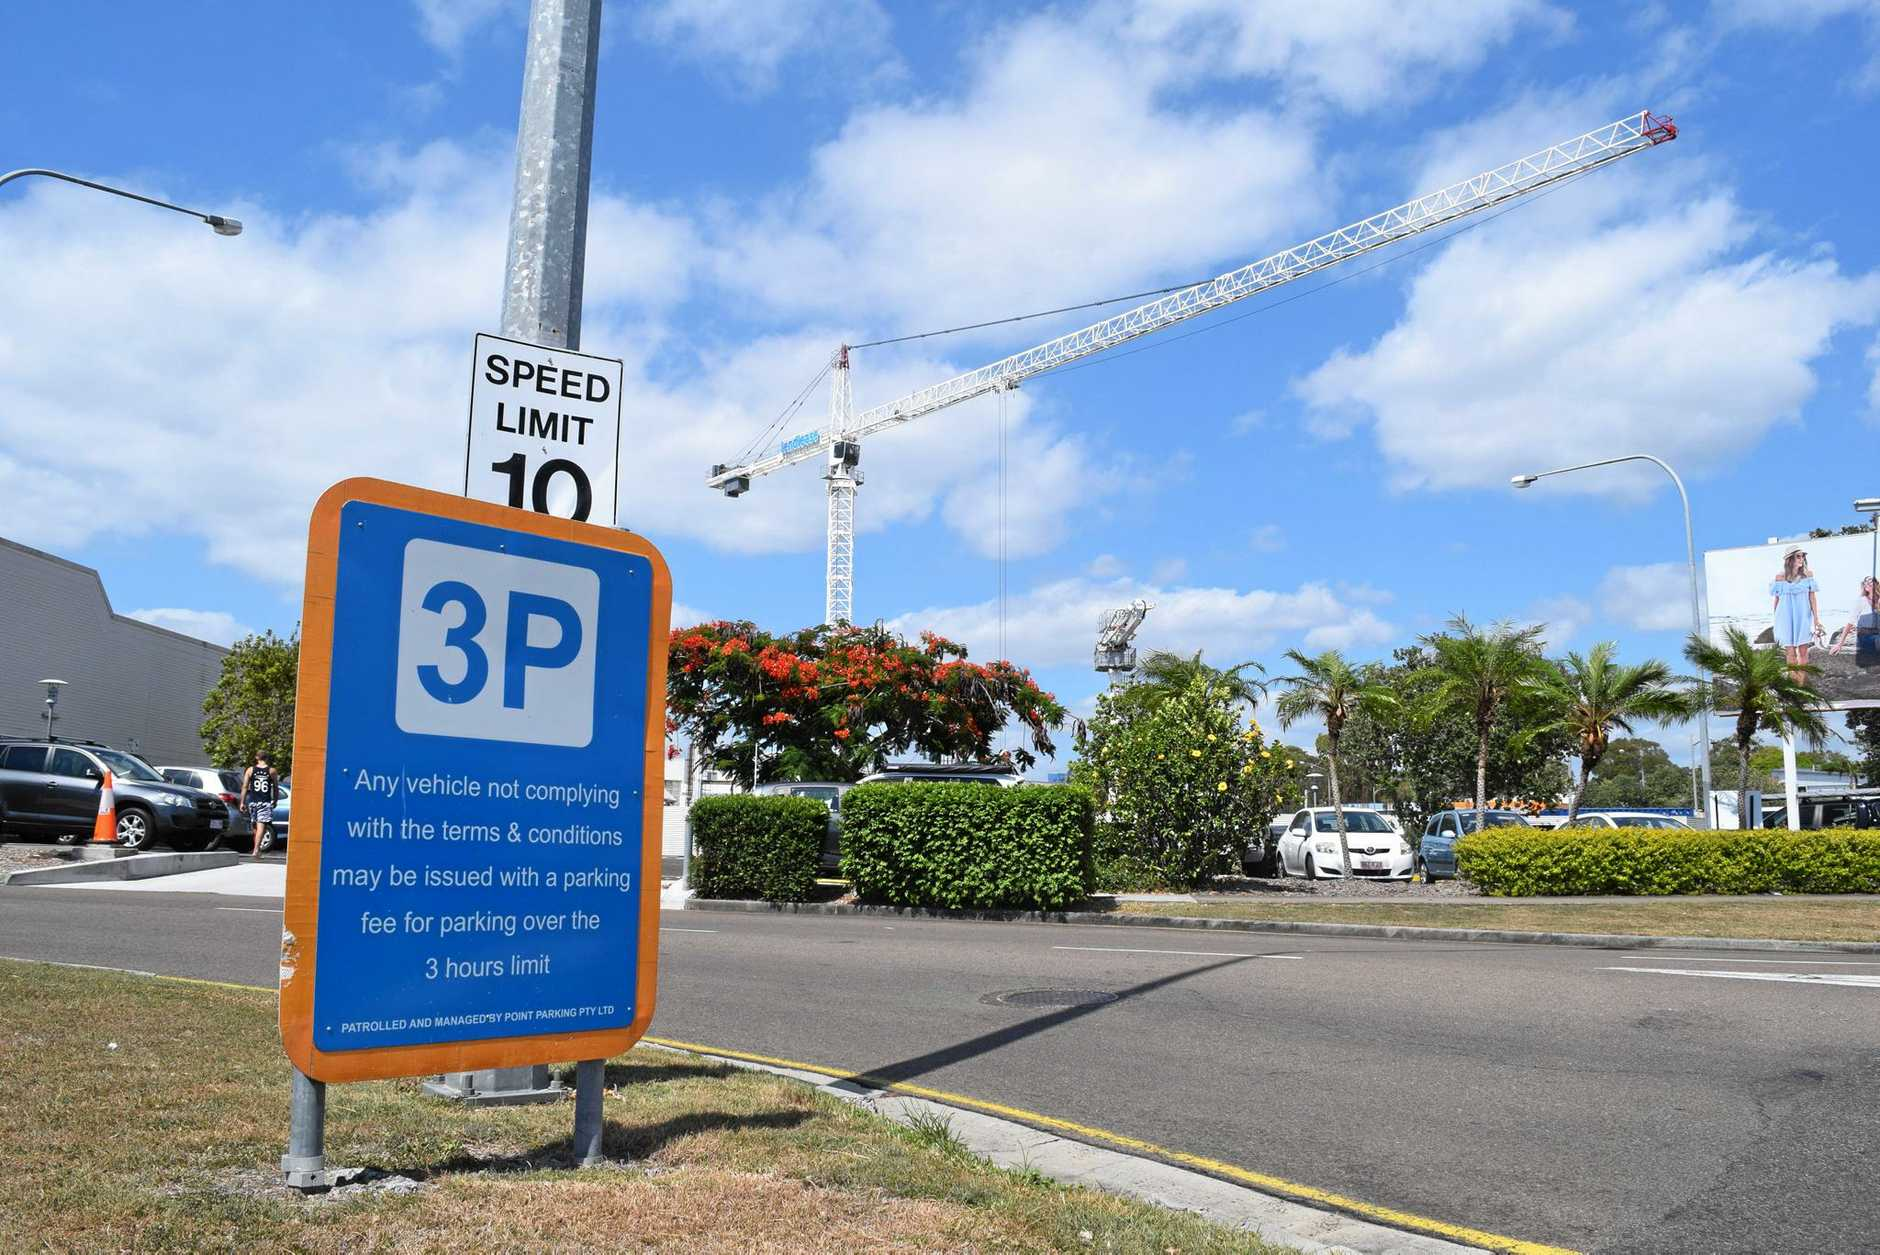 A 3P parking sign warns Sunshine Plaza customers of restrictions.